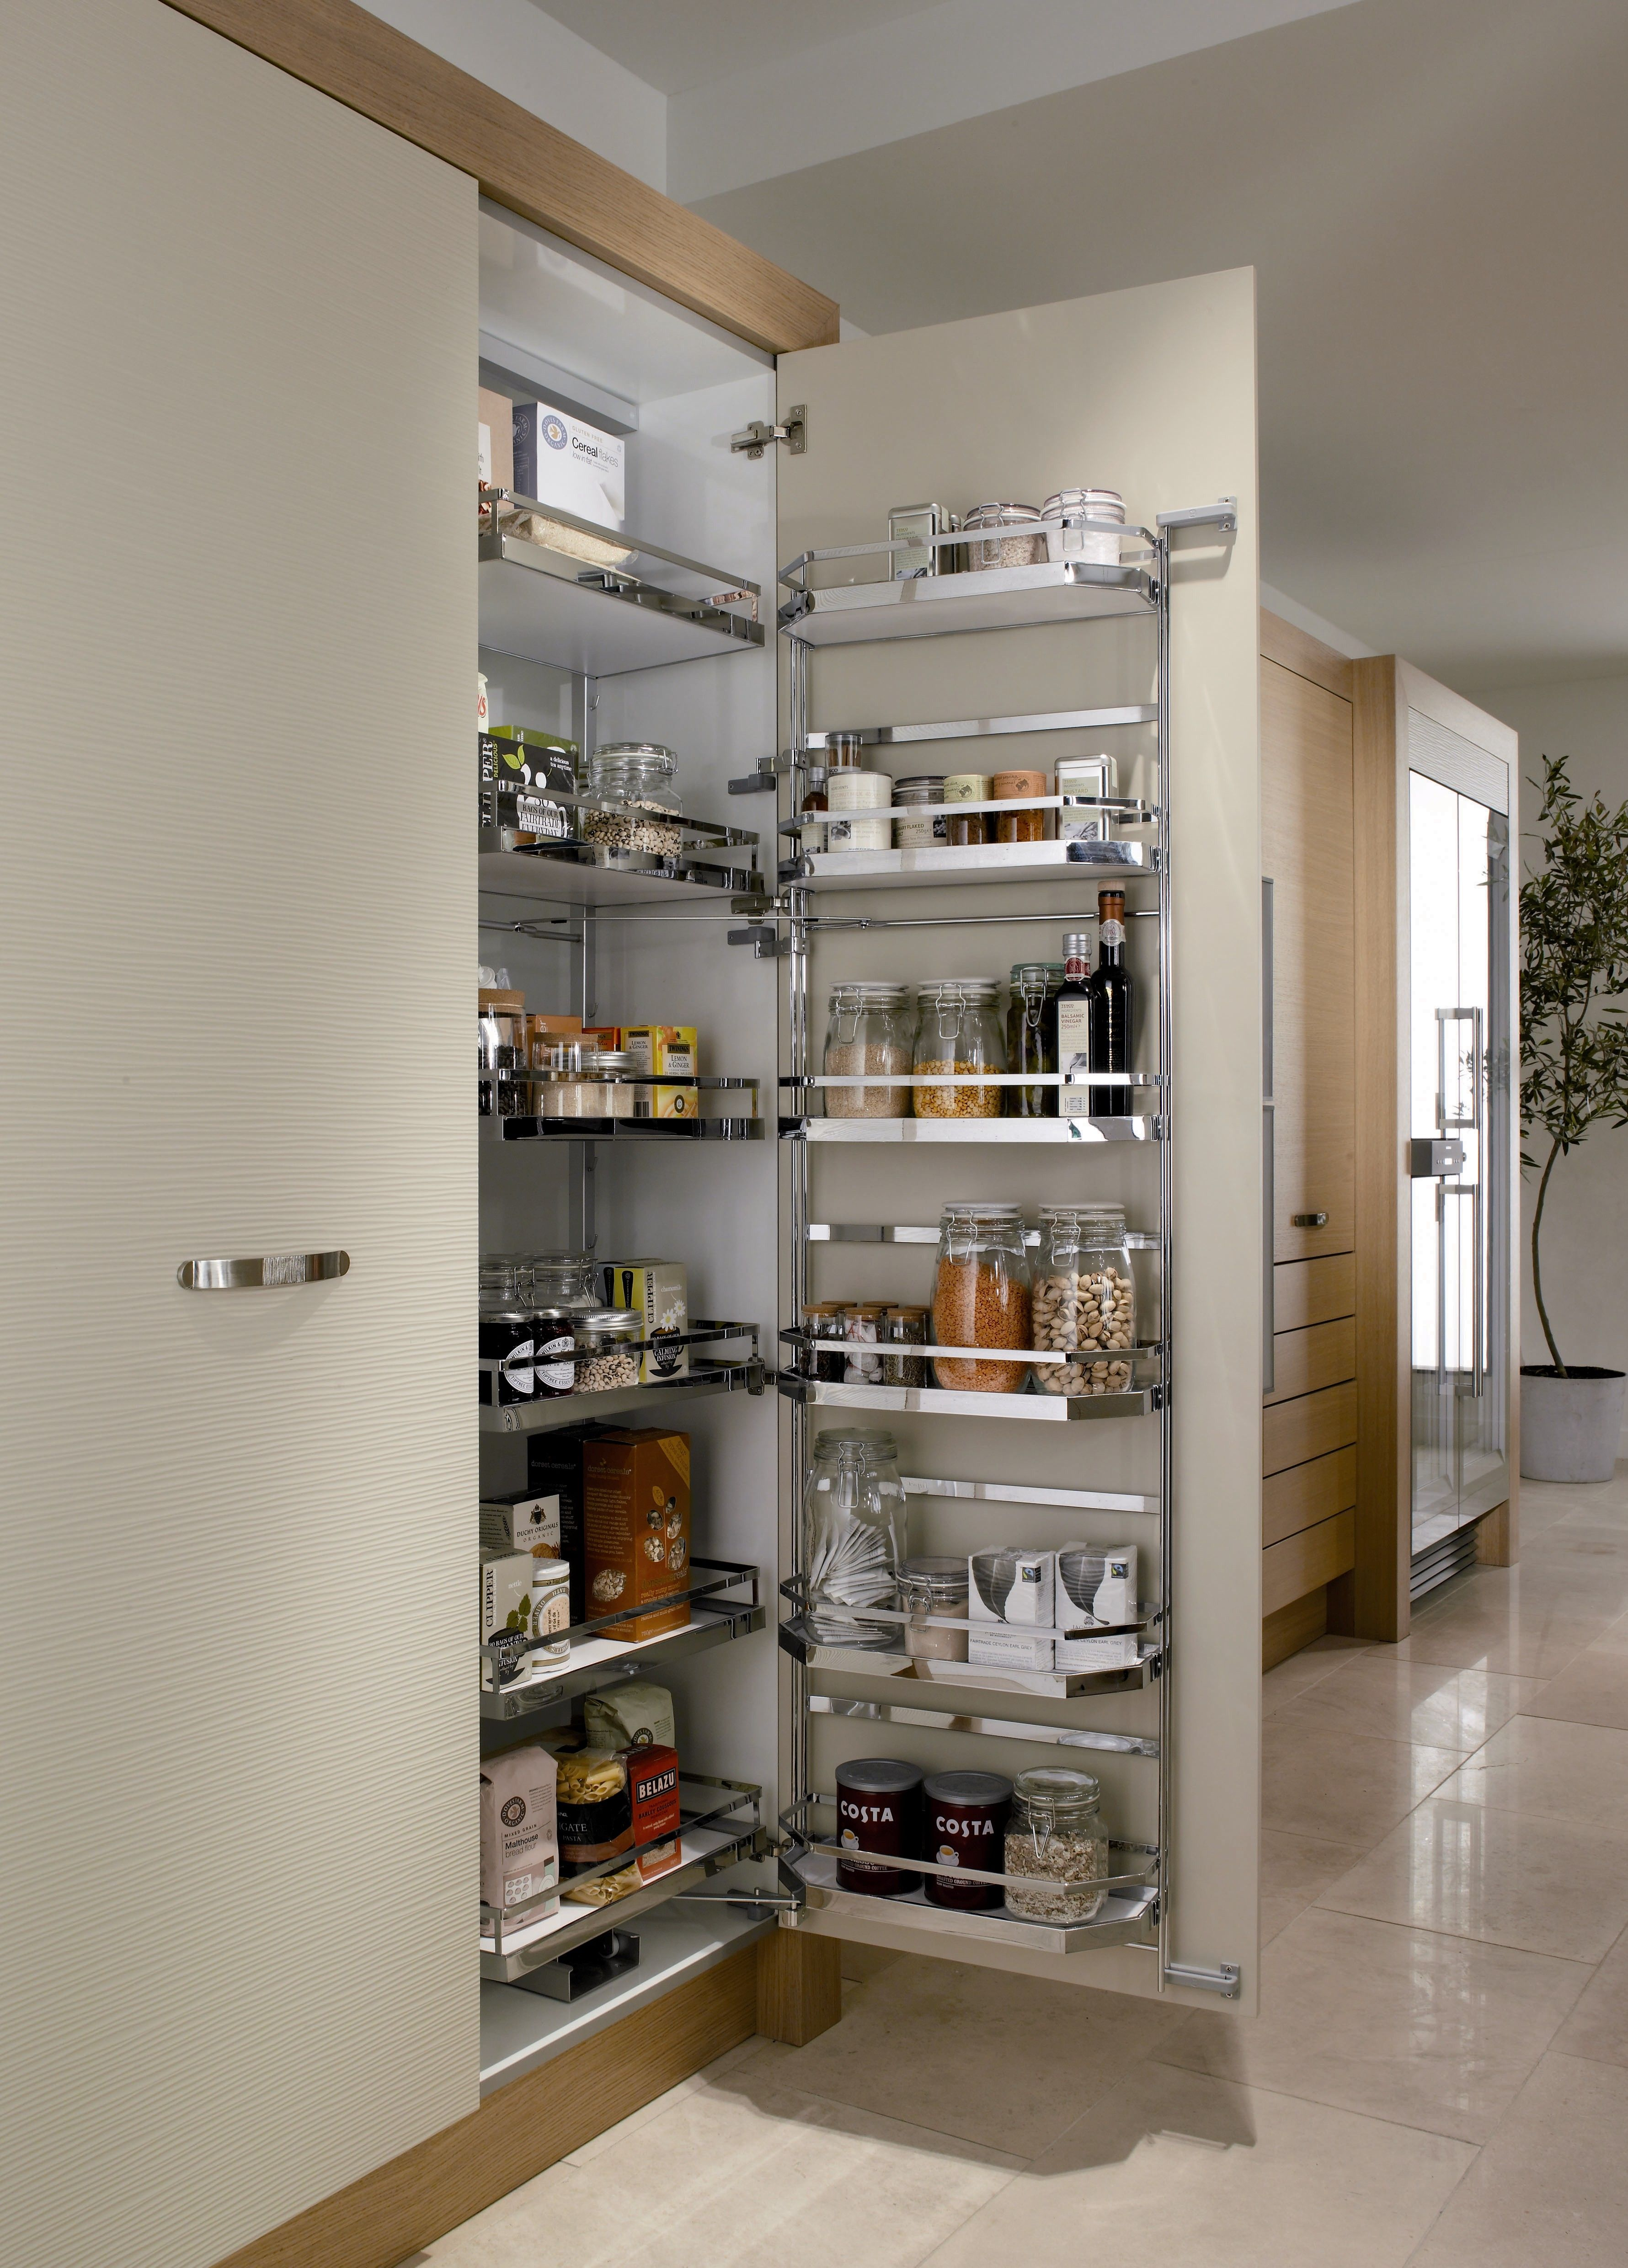 hanging rolling of doors sliding with organization storage pull kitchen nice cupboard wire baskets inserts roll great double for basket kraftmaid shelving to closet shelves ho awesome out size marvelous medicine cabinet locks pantry full drawers cabinets